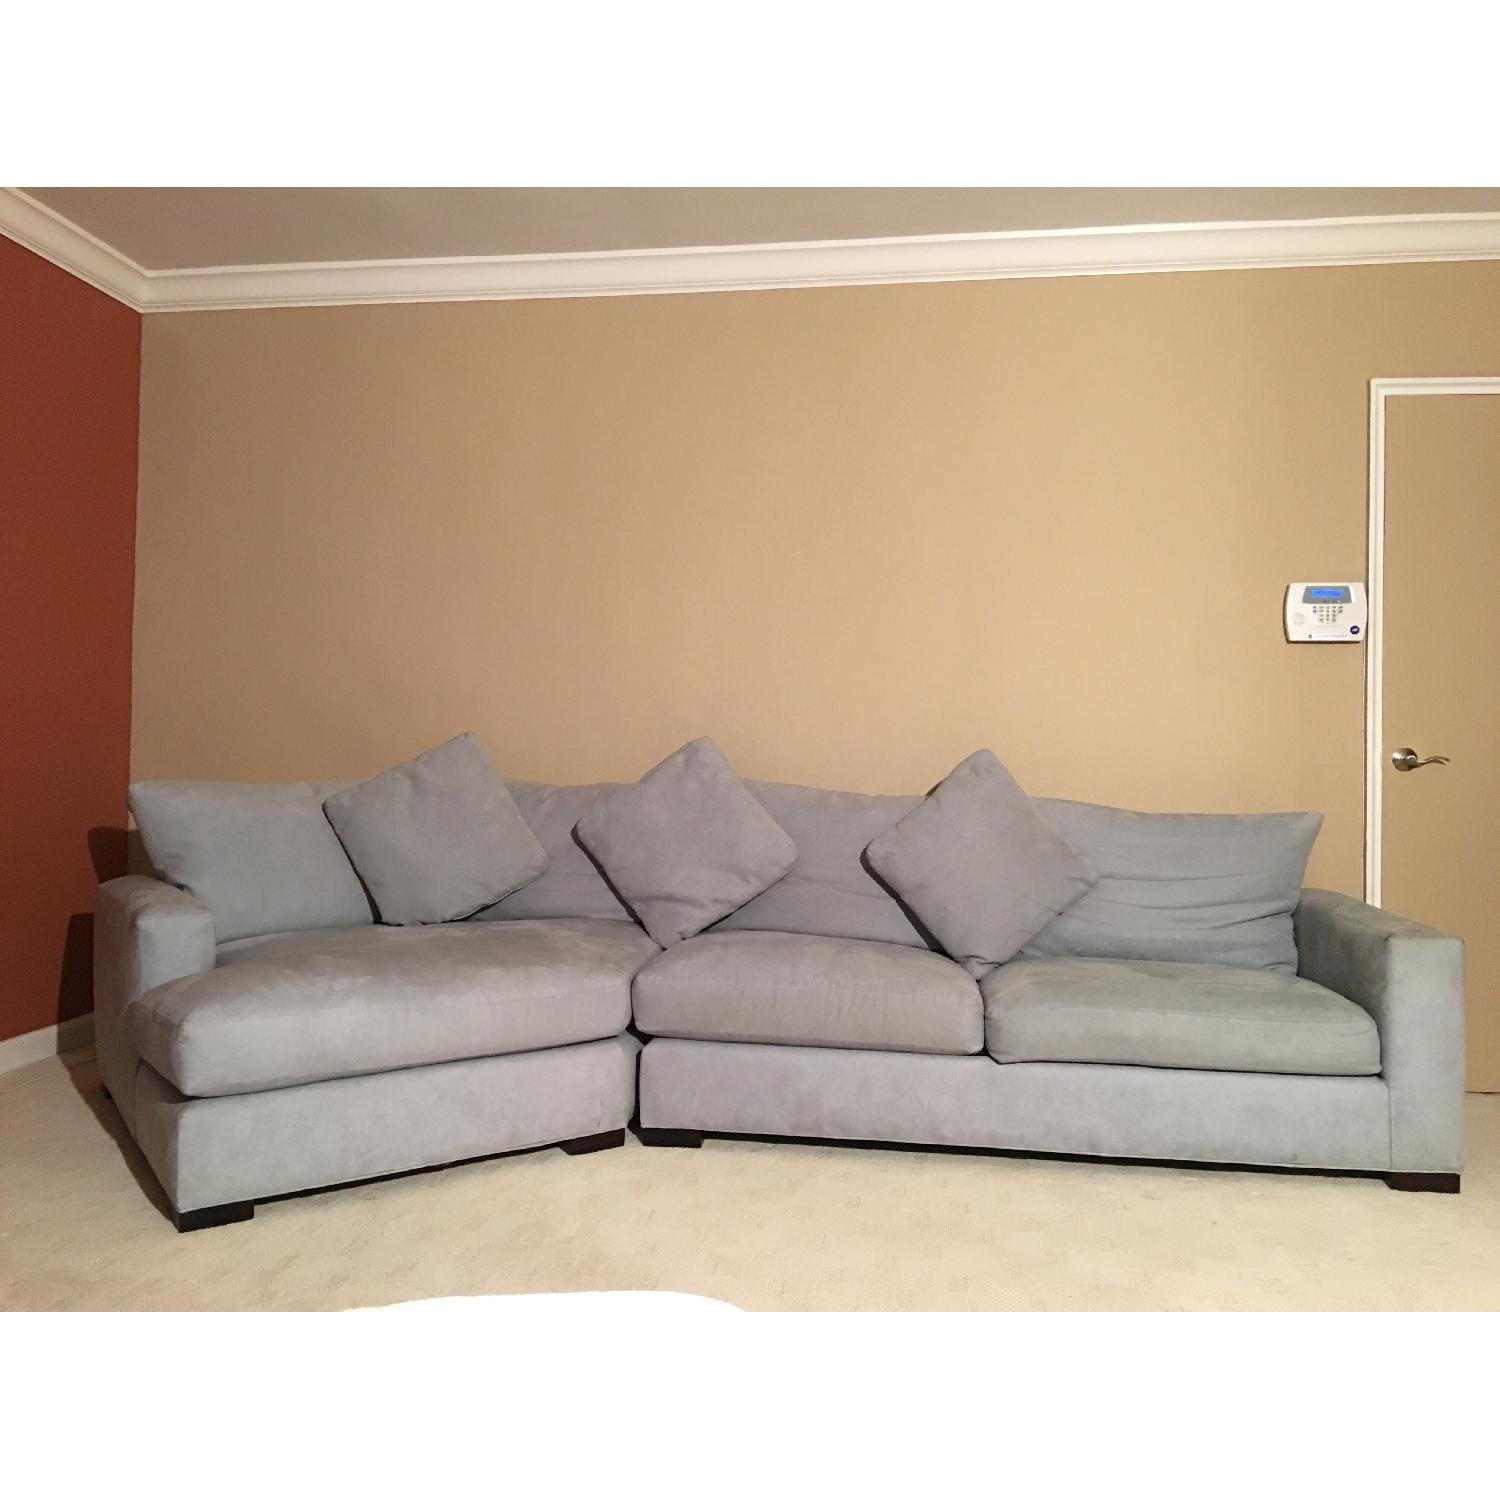 Room & Board Microsuede L-Shaped Couch - image-3